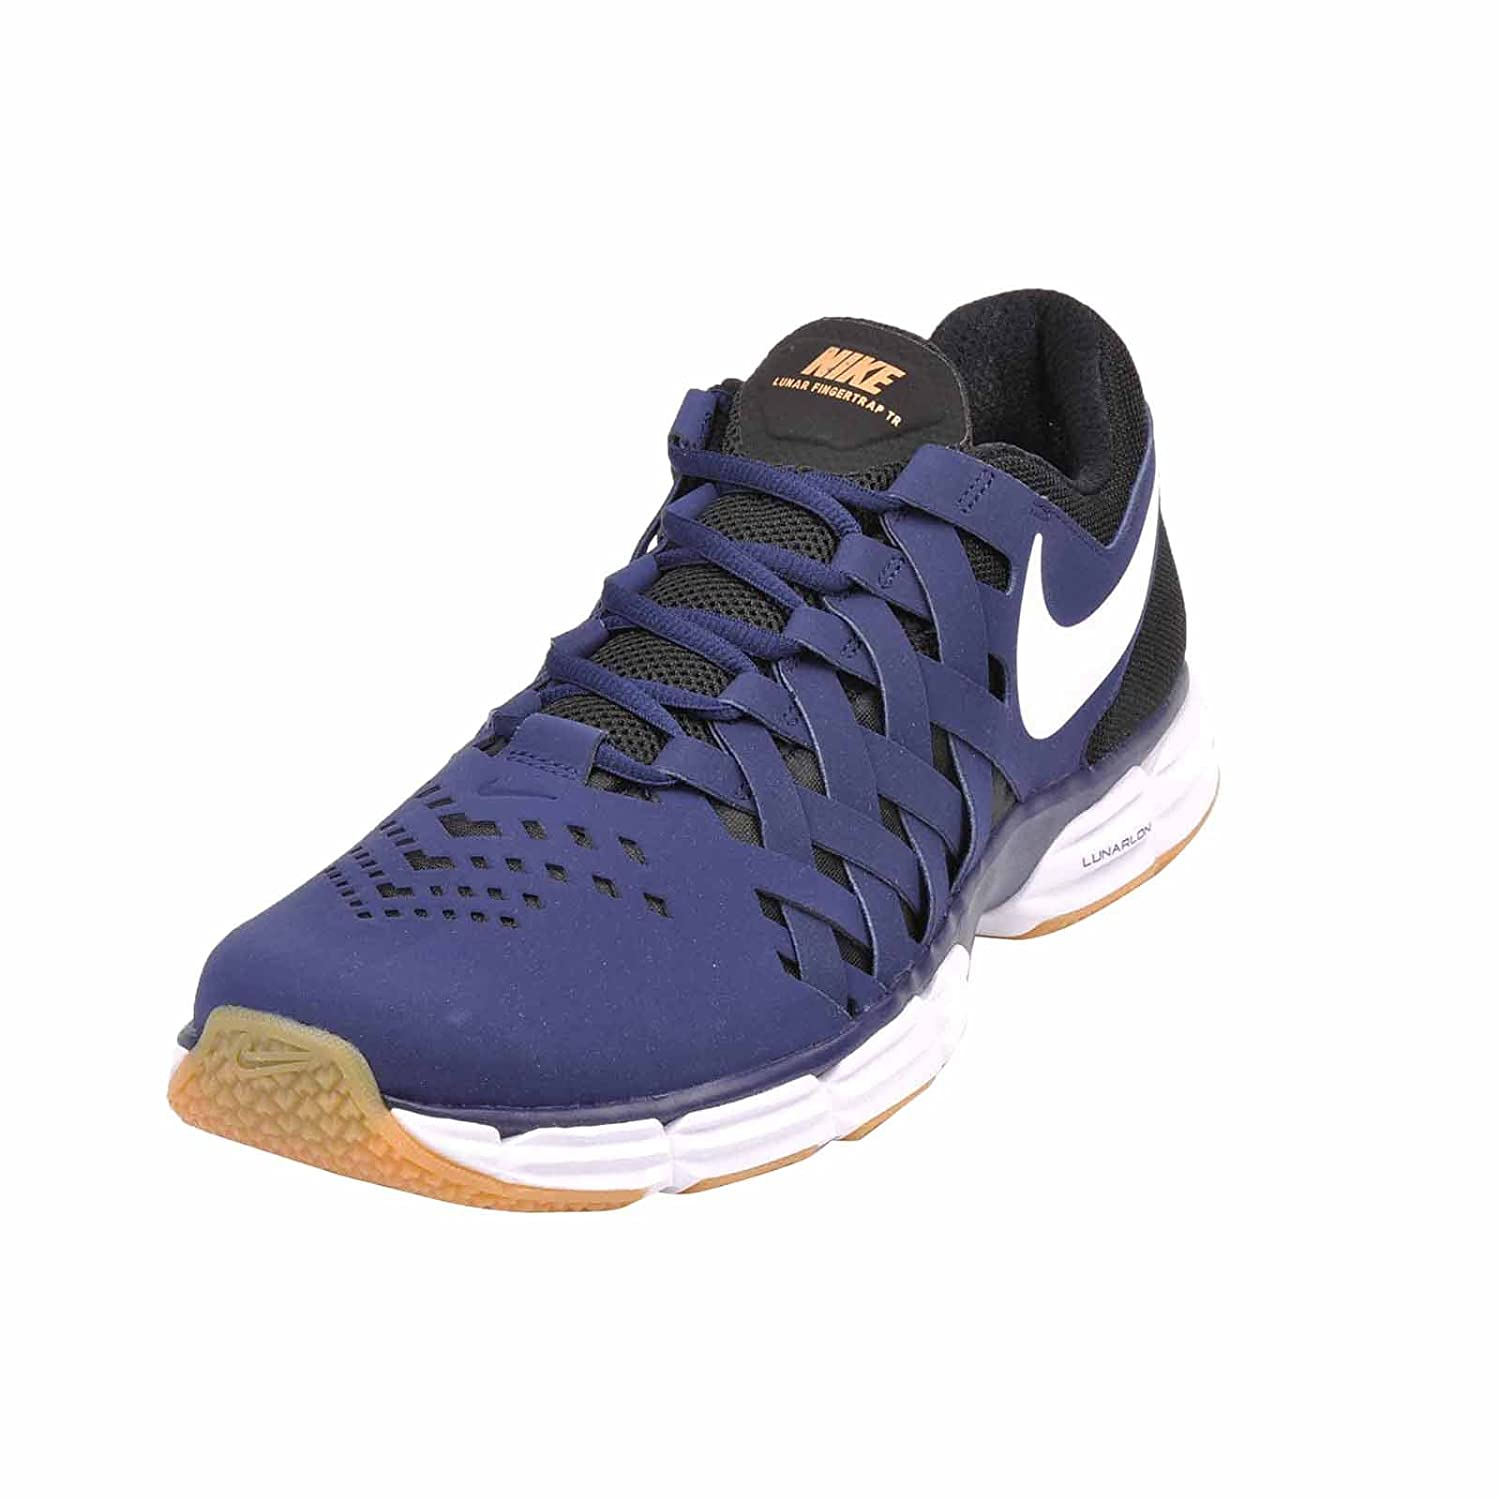 NIKE Men's Lunar Fingertrap Cross Trainer B06VW9HMBD 8.5 D(M) US|Binary Blue White Black